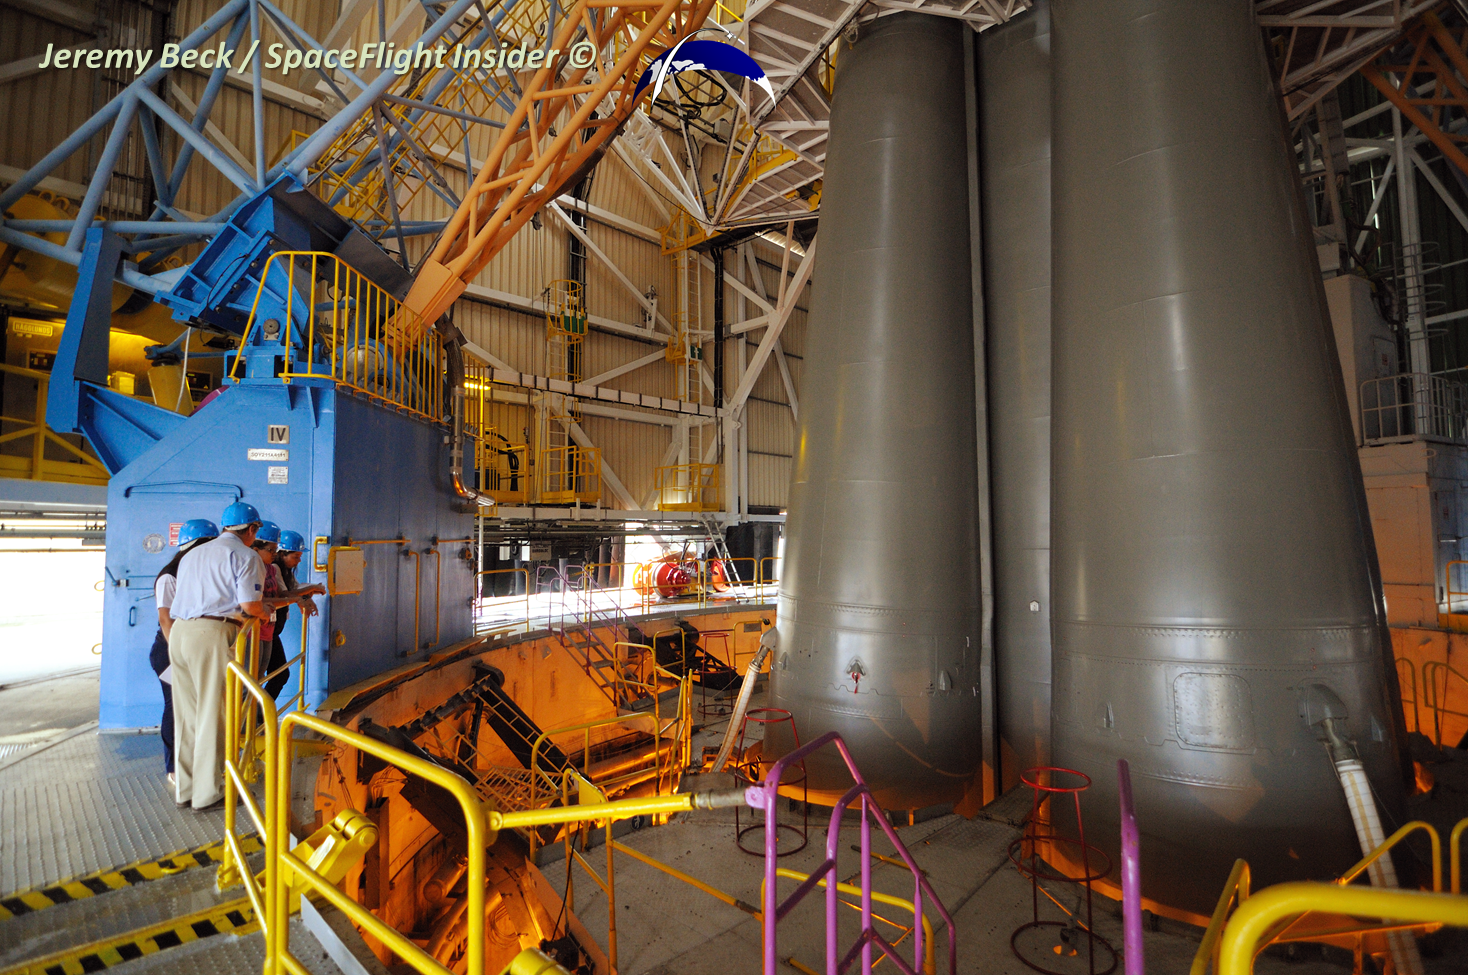 The Soyuz booster was prepped for launch on Thursday, Dec. 19. Photo Credit: Jeremy Beck / SpaceFlight Insider